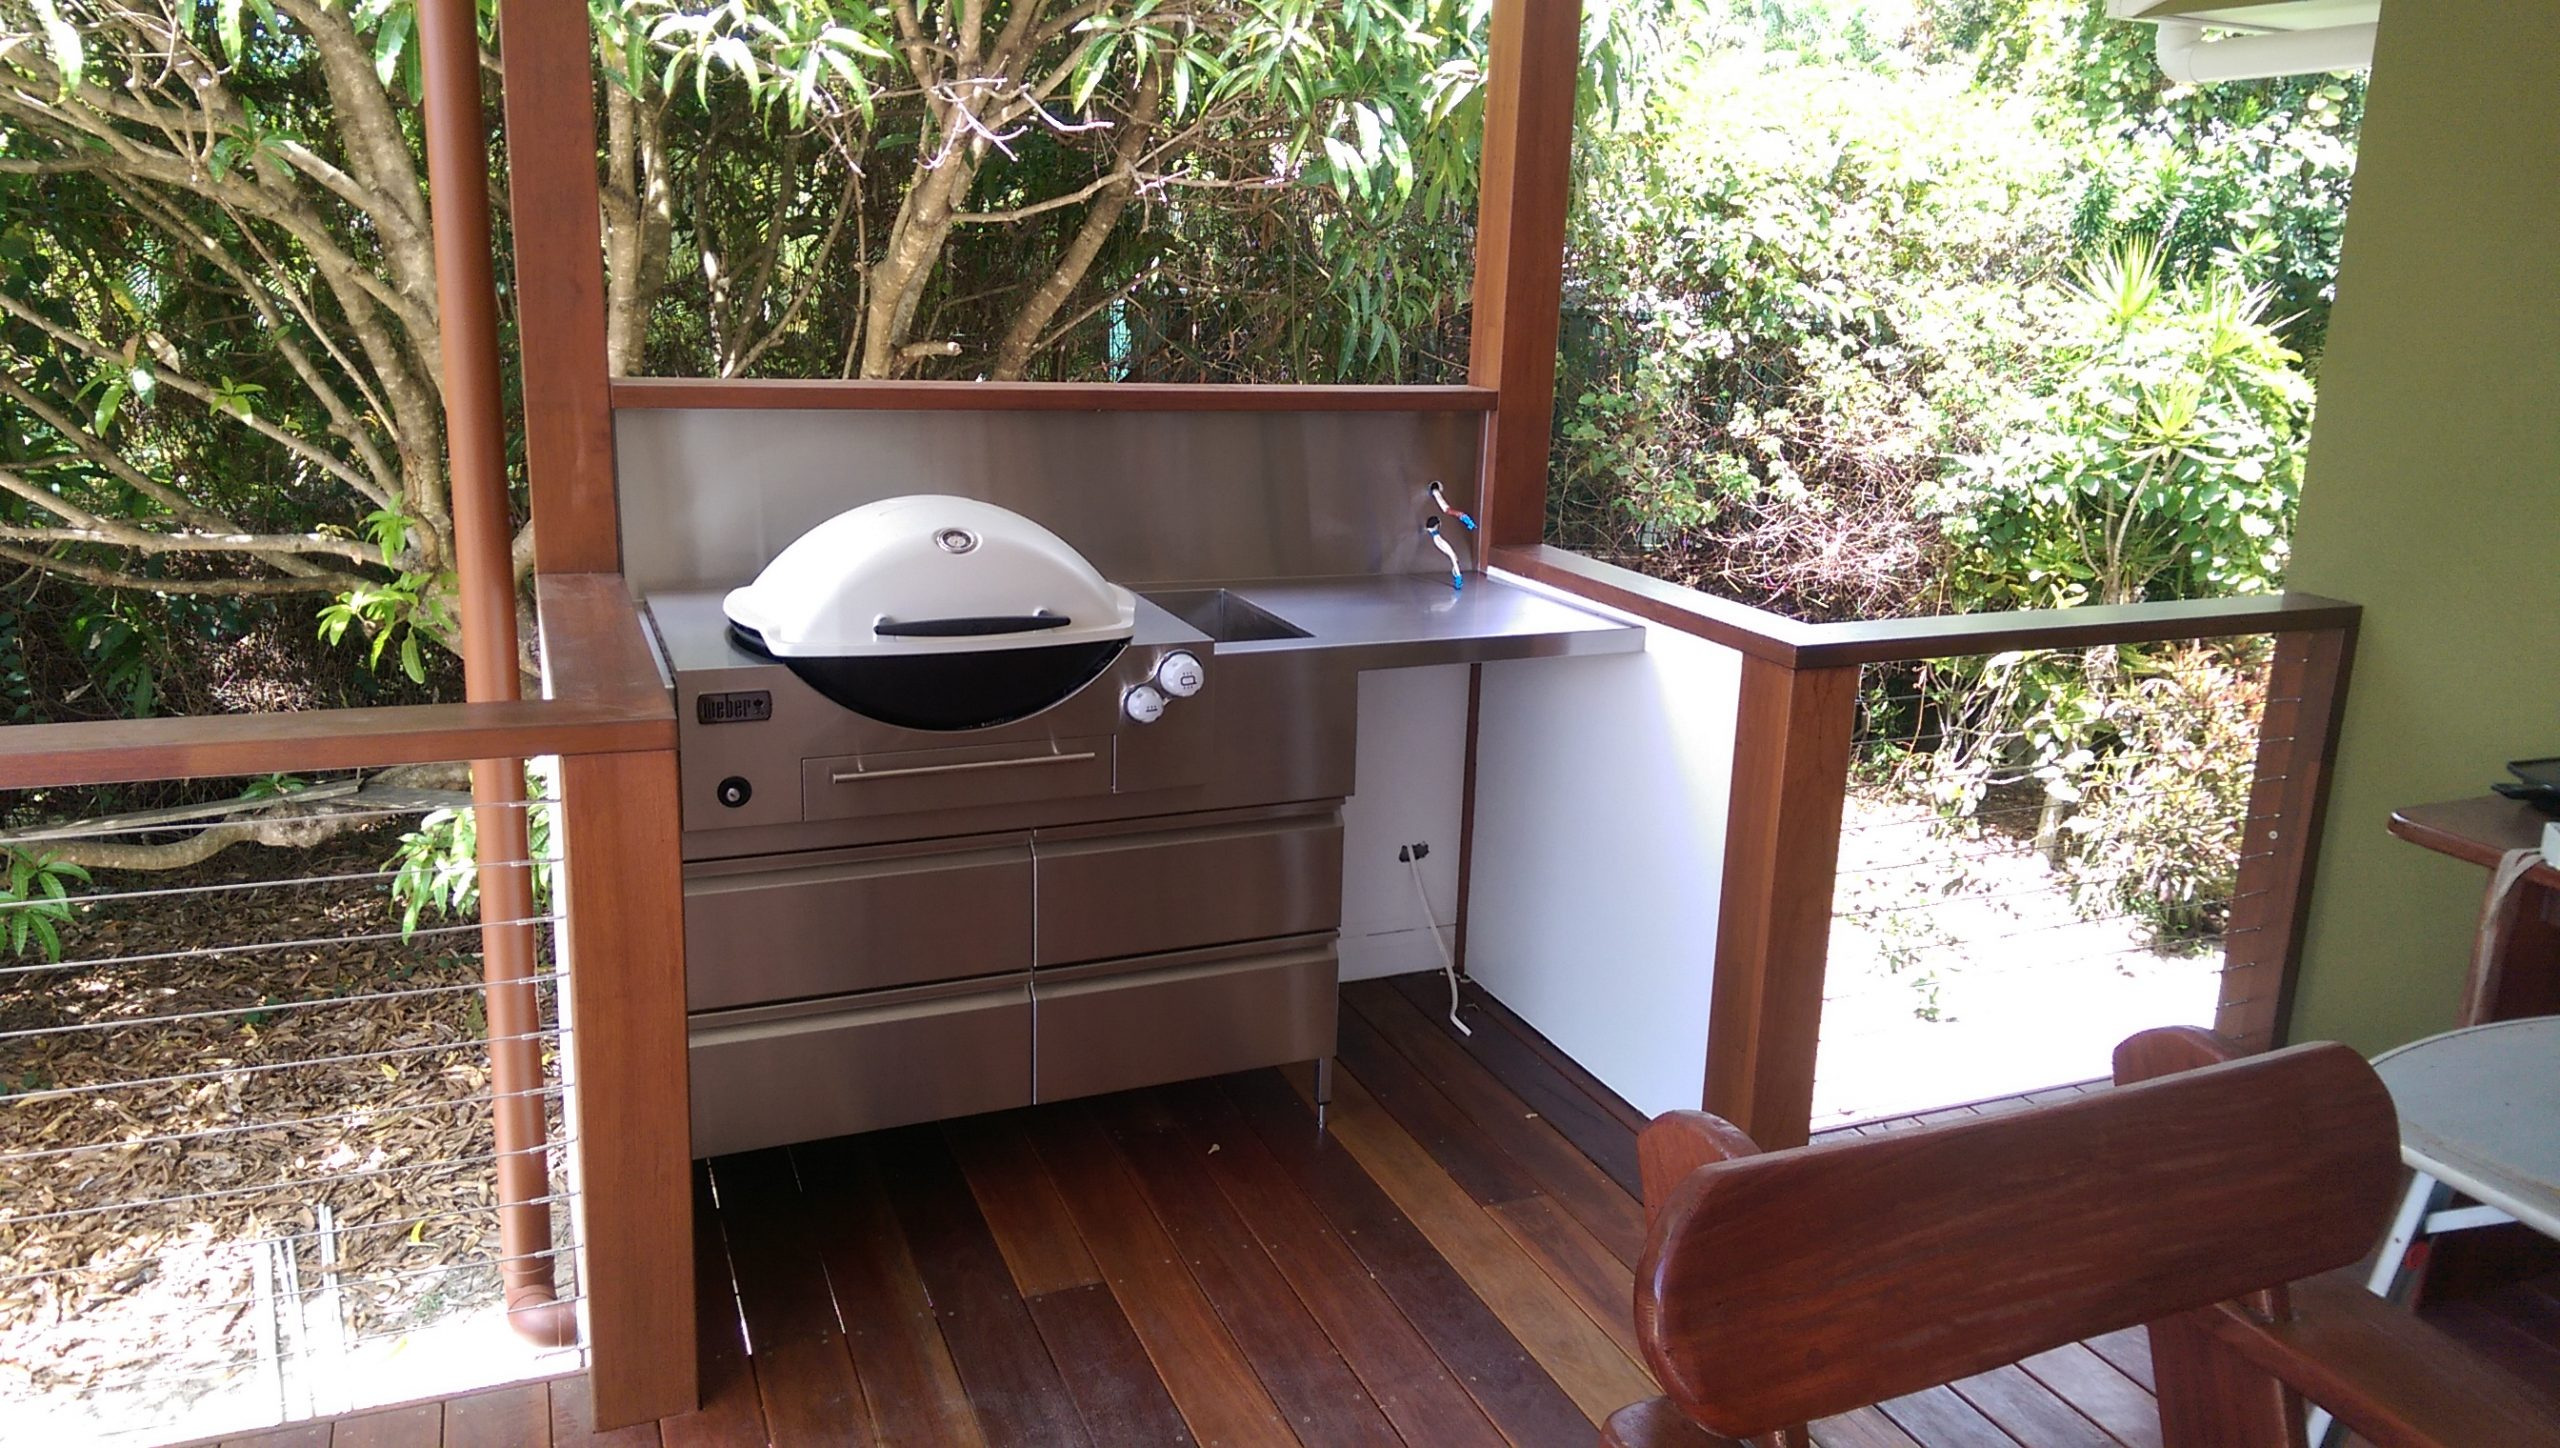 DOMESTIC-STAINLESS-STEEL-KITCHEN